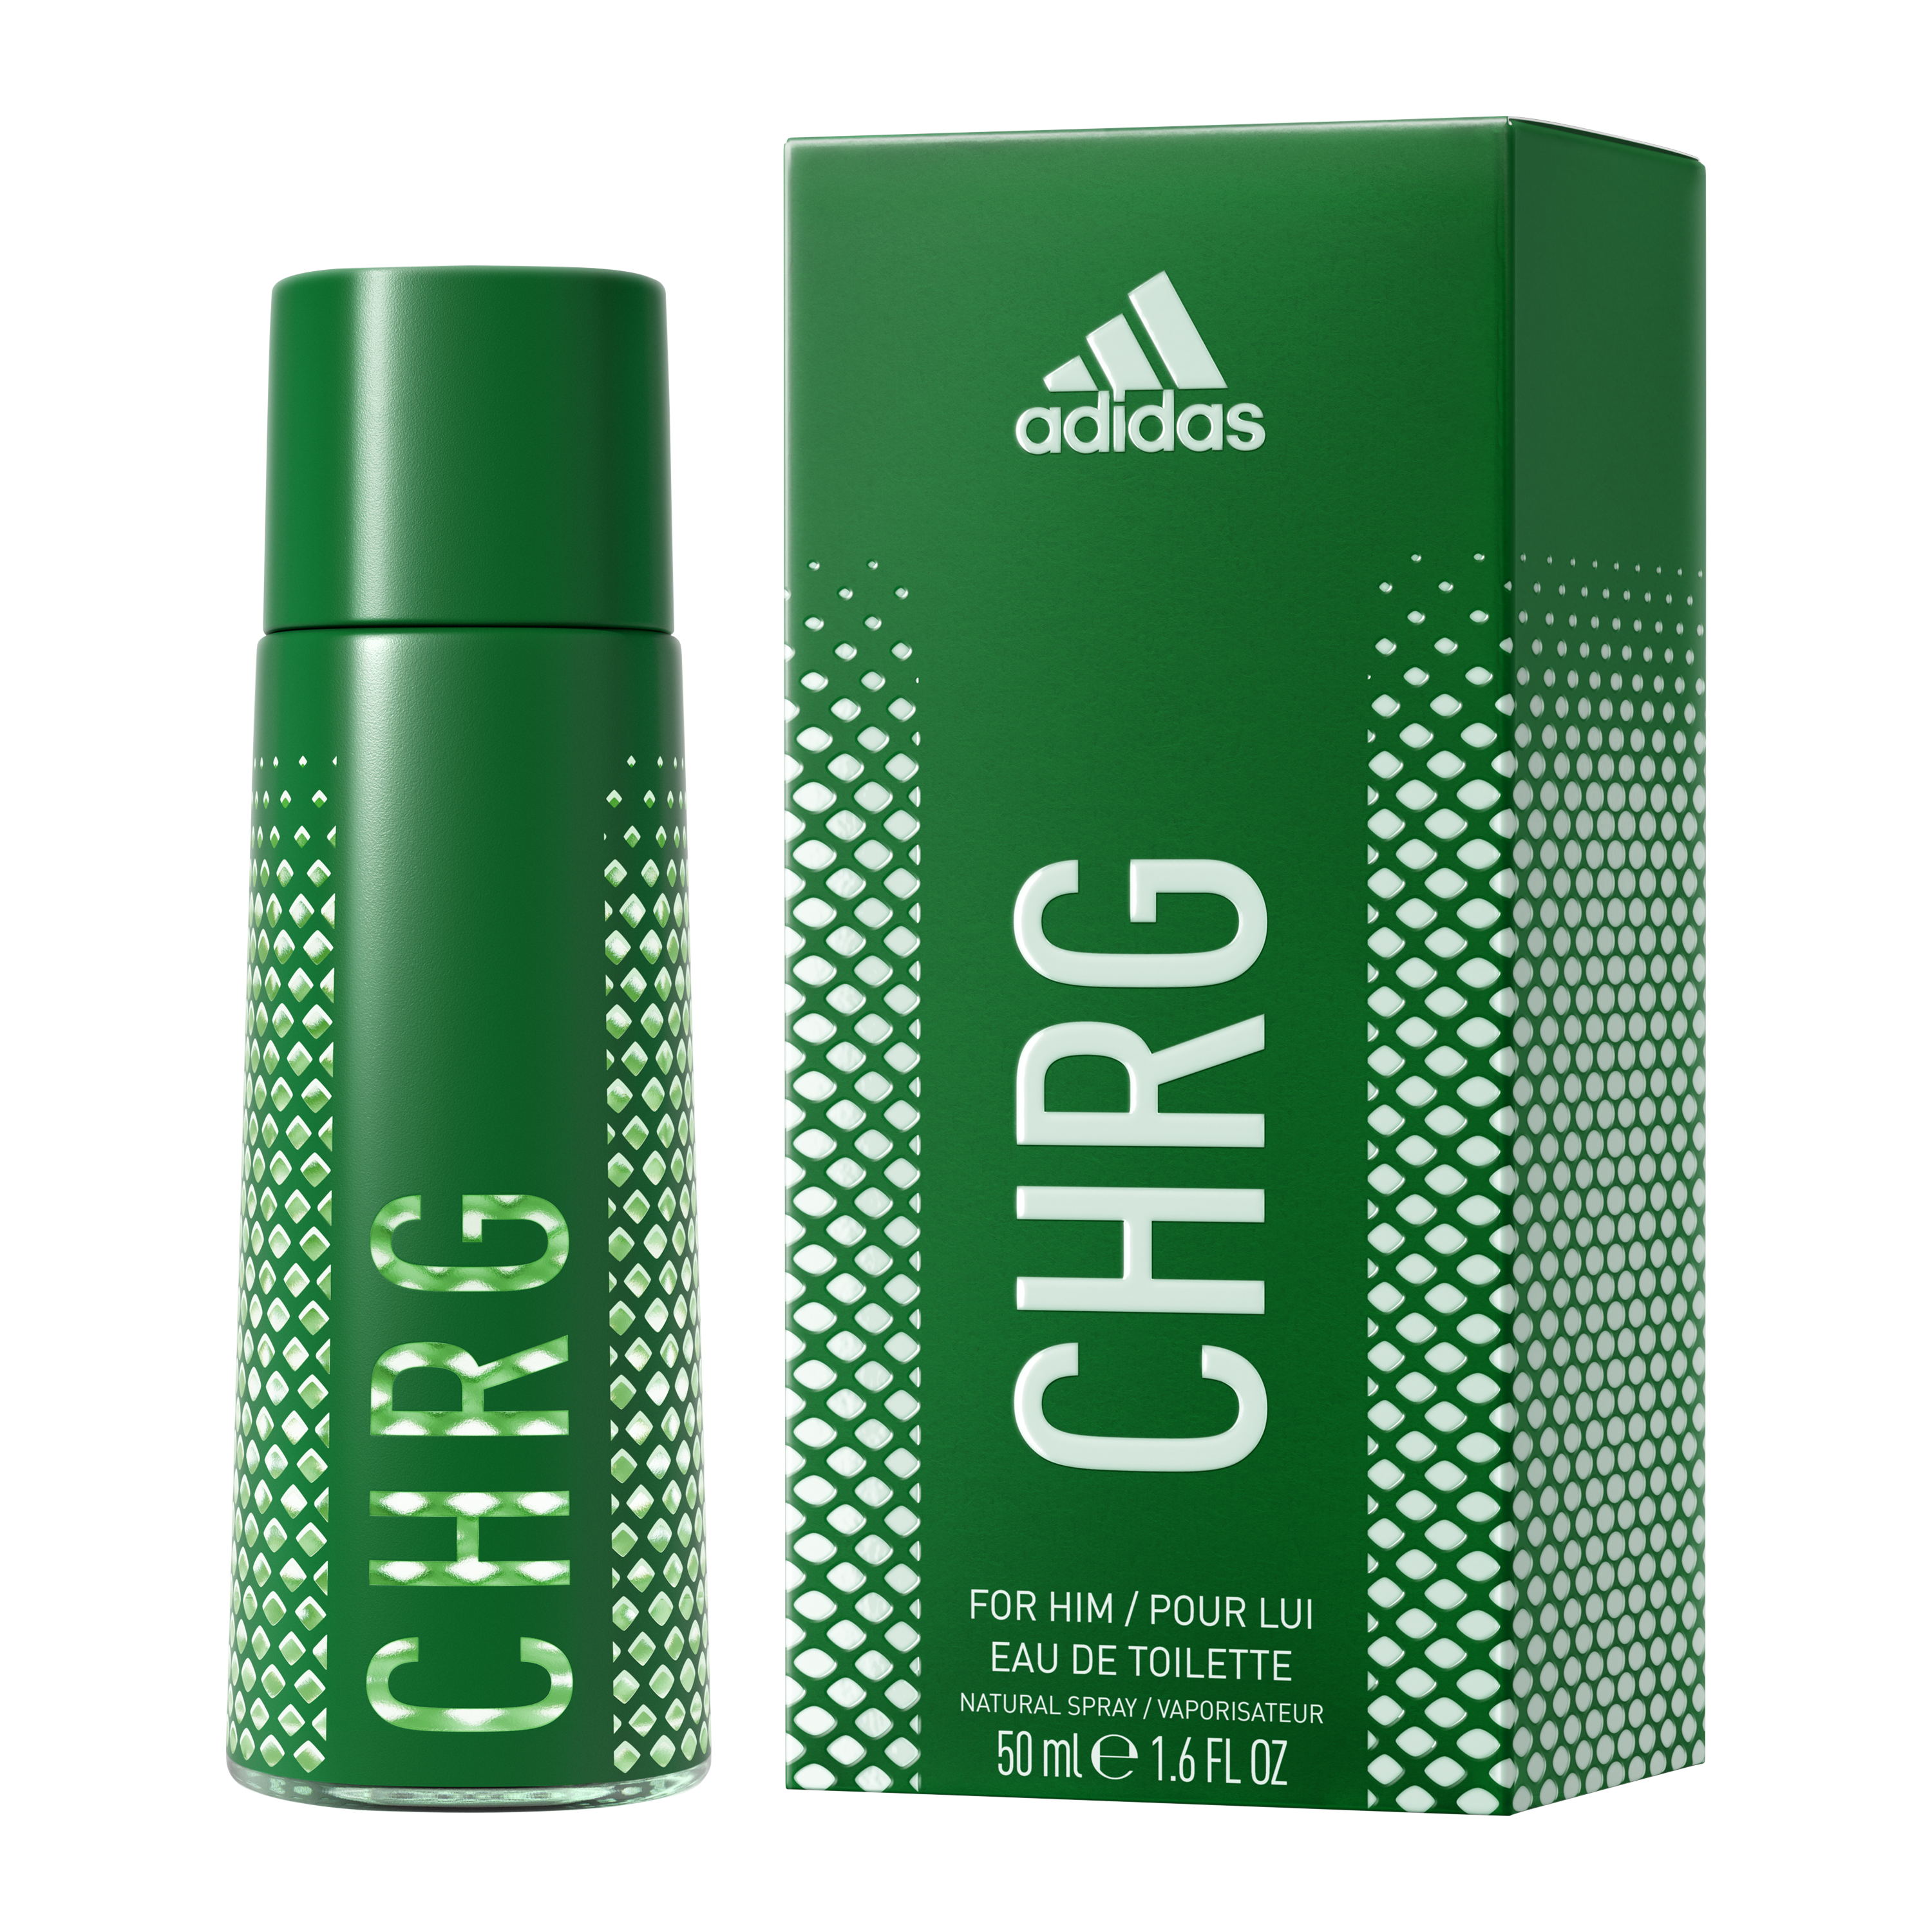 Culture of Sport Charge 50 ml Adidas Herrparfym